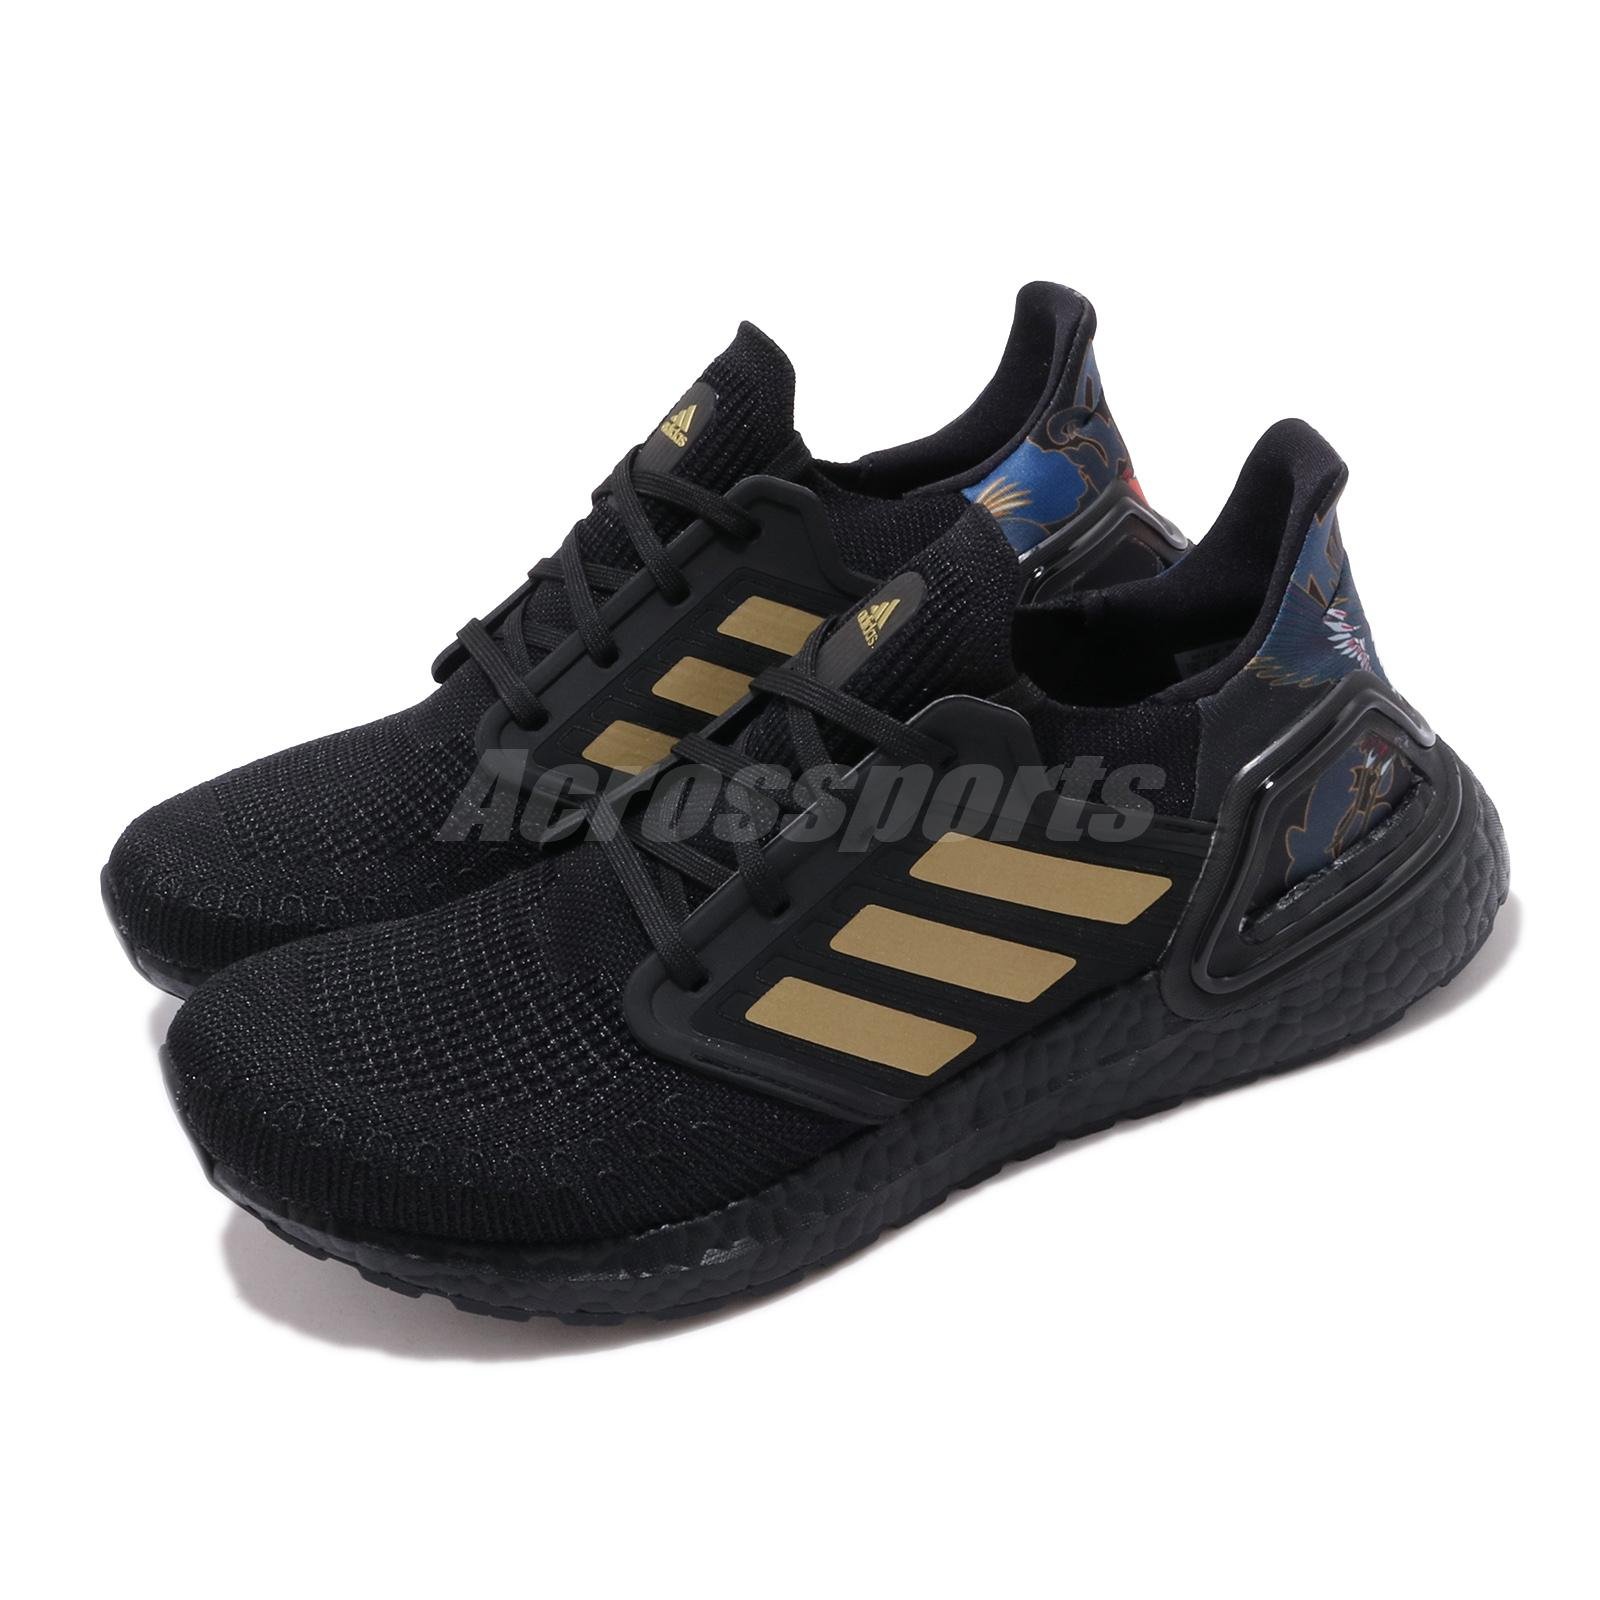 Details about adidas UltraBOOST 20 CNY Gold Black Chinese New Year Men  Shoes Sneakers FW4322